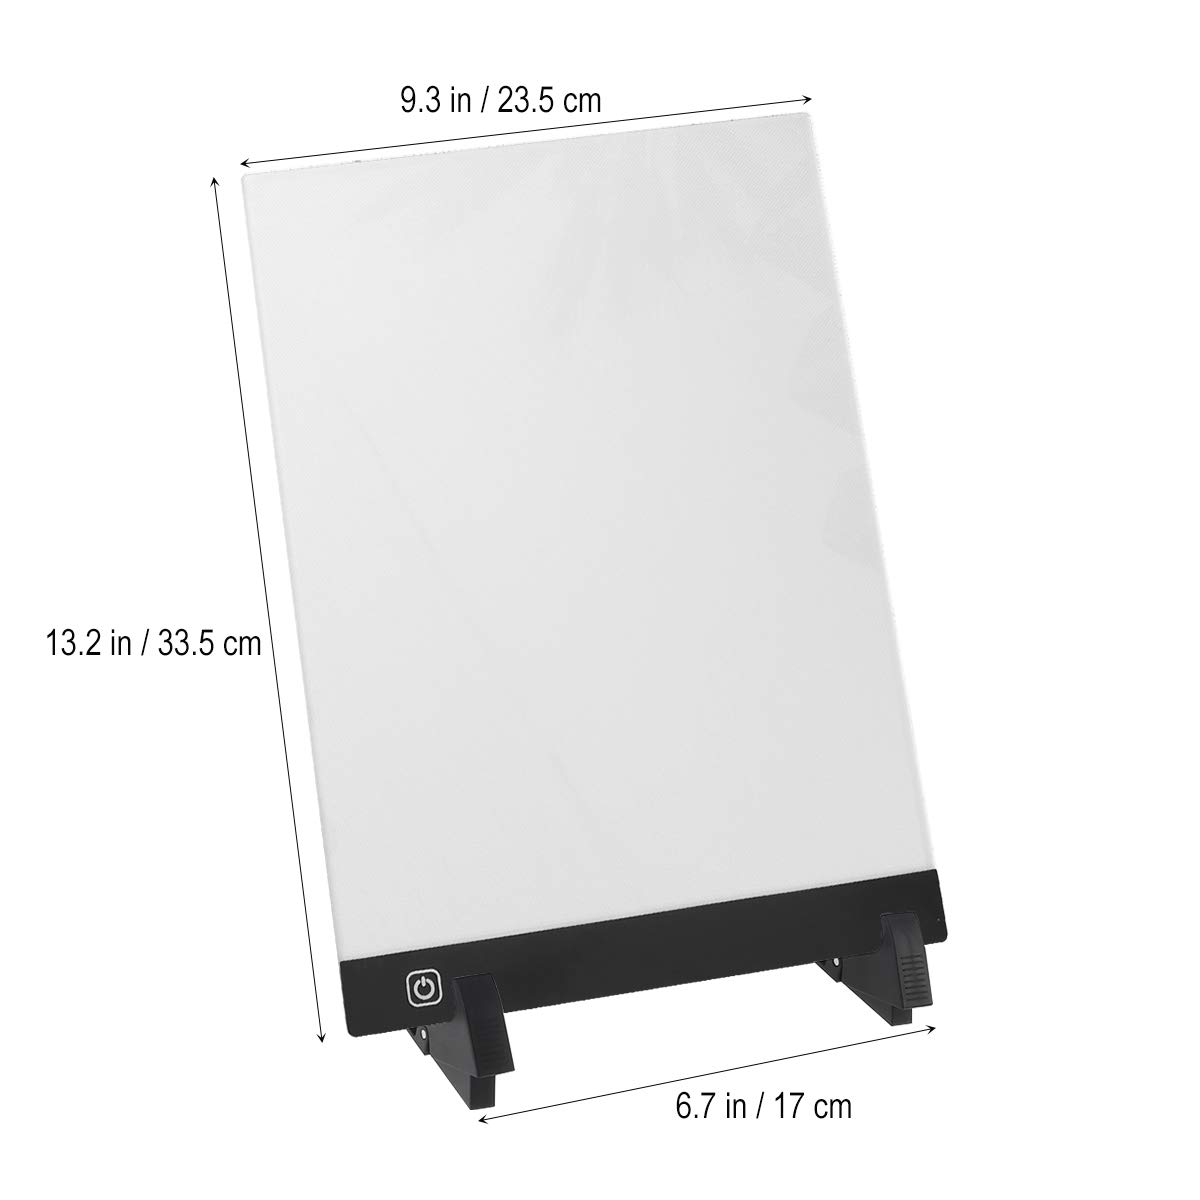 STOBOK Light Drawing Board 1 Set A4 LED Light Box Drawing Sketch Tablet Tracking Artist Backing Plate Diamond Painting Tools for Desktop Table Easel Craft Workstation by STOBOK (Image #3)